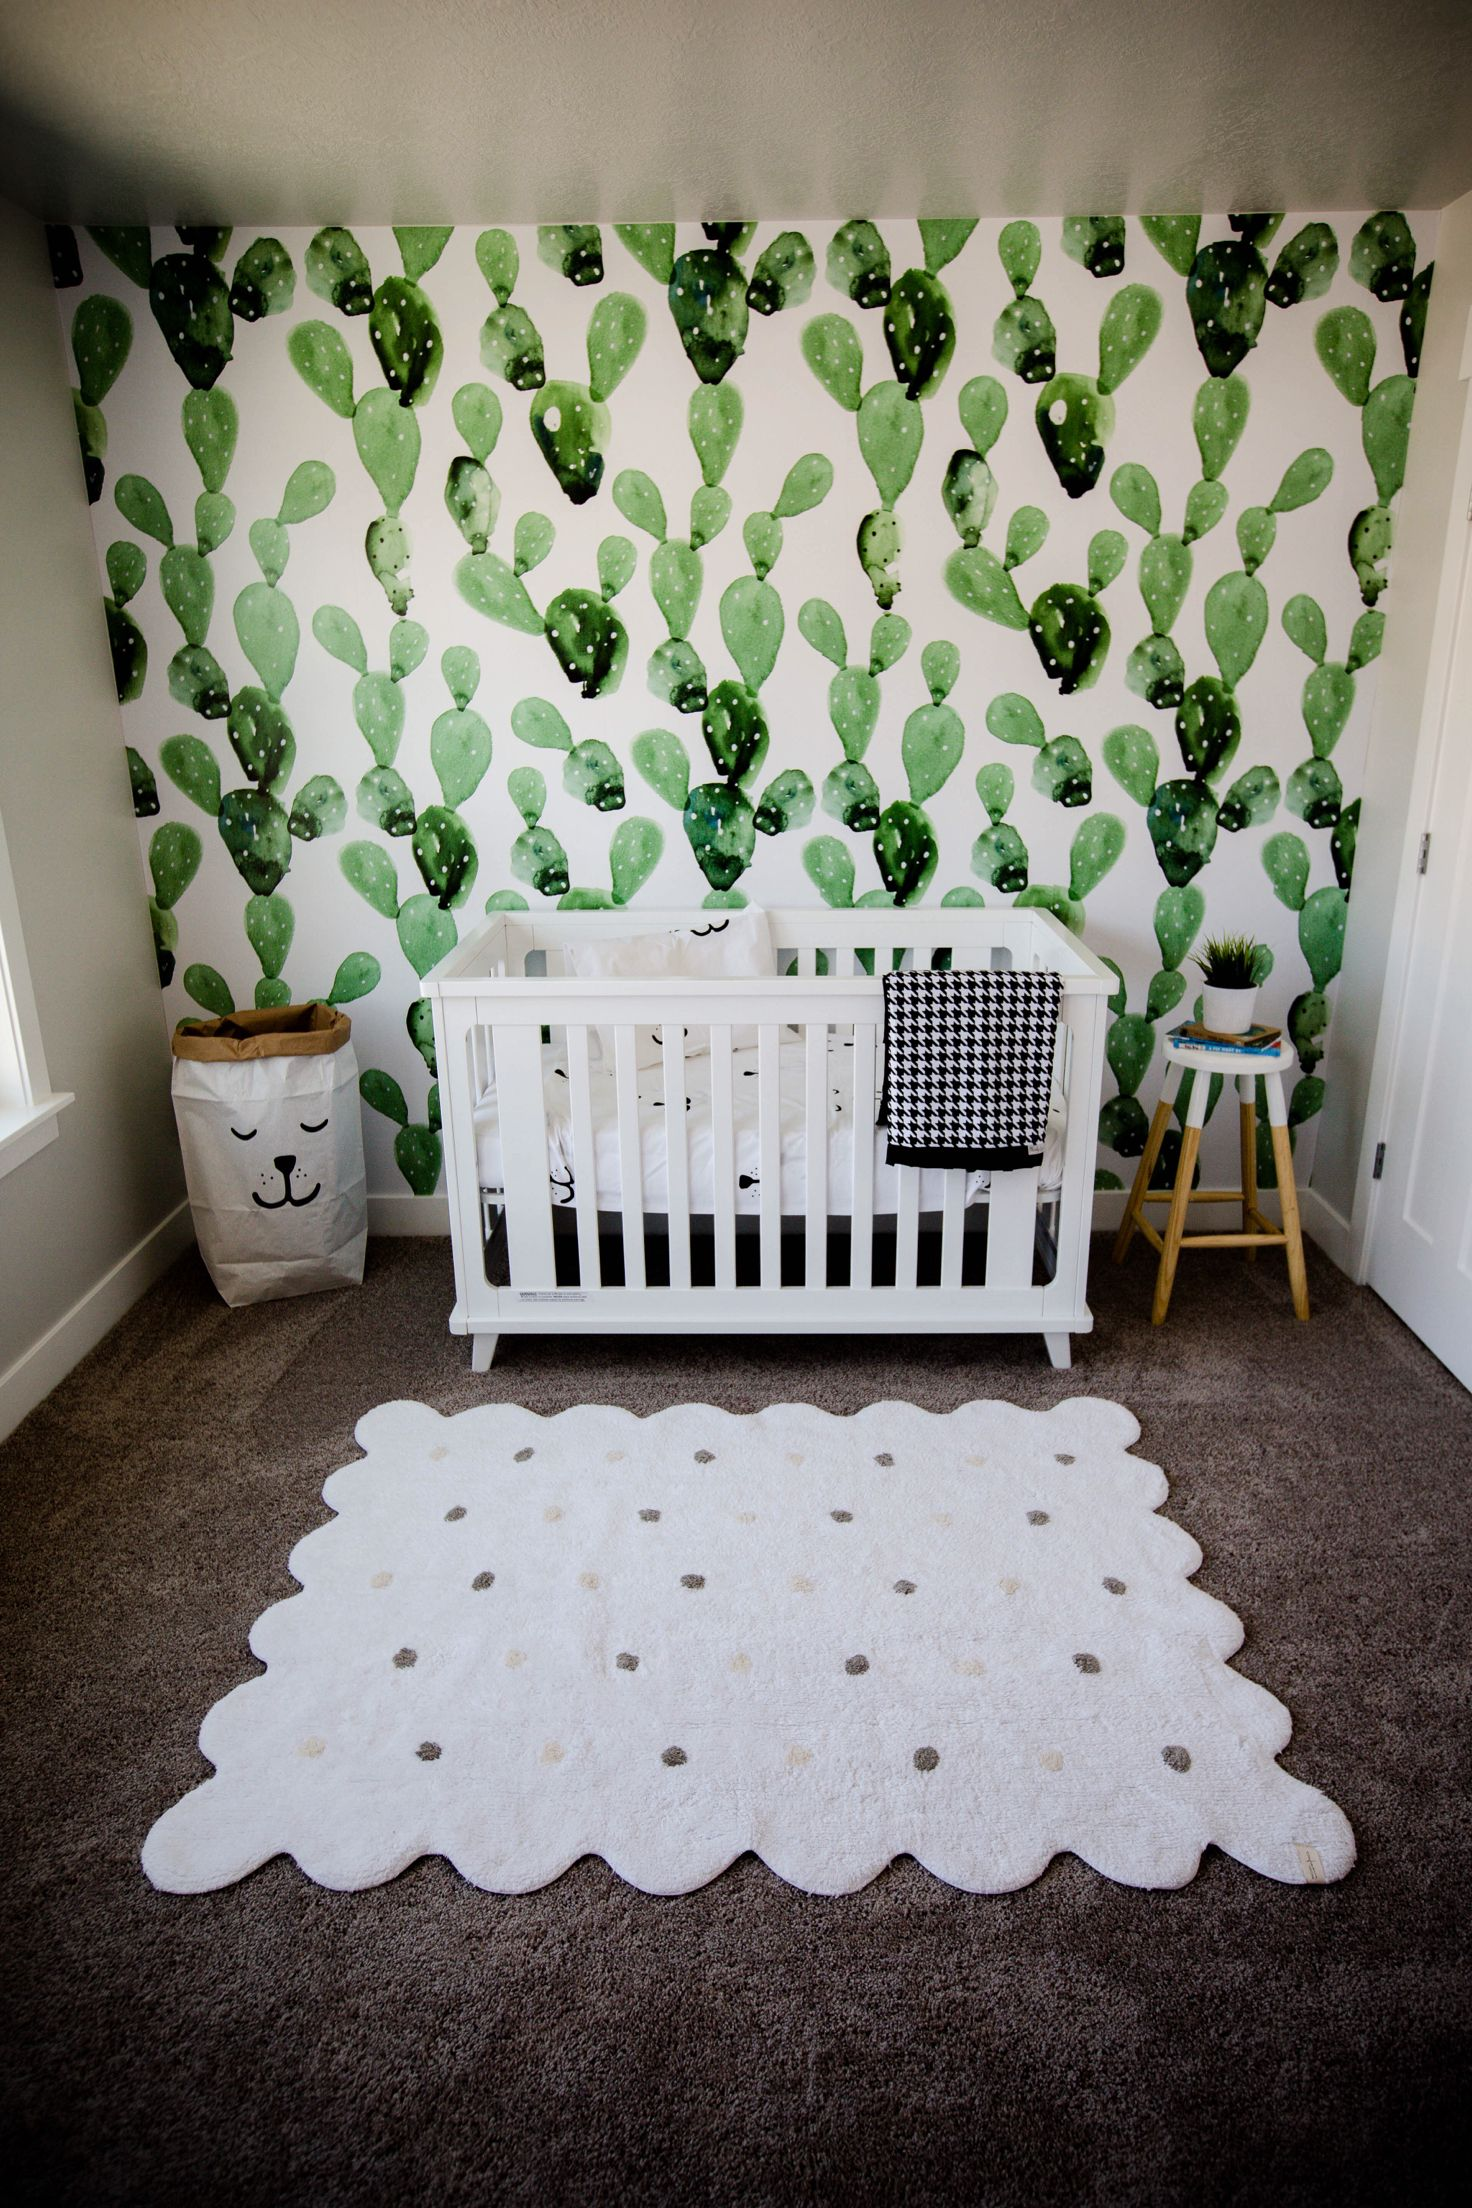 Chambre Gender Nursery Cactus Nursery Baby Boy Gender Neutral Anewall Decor